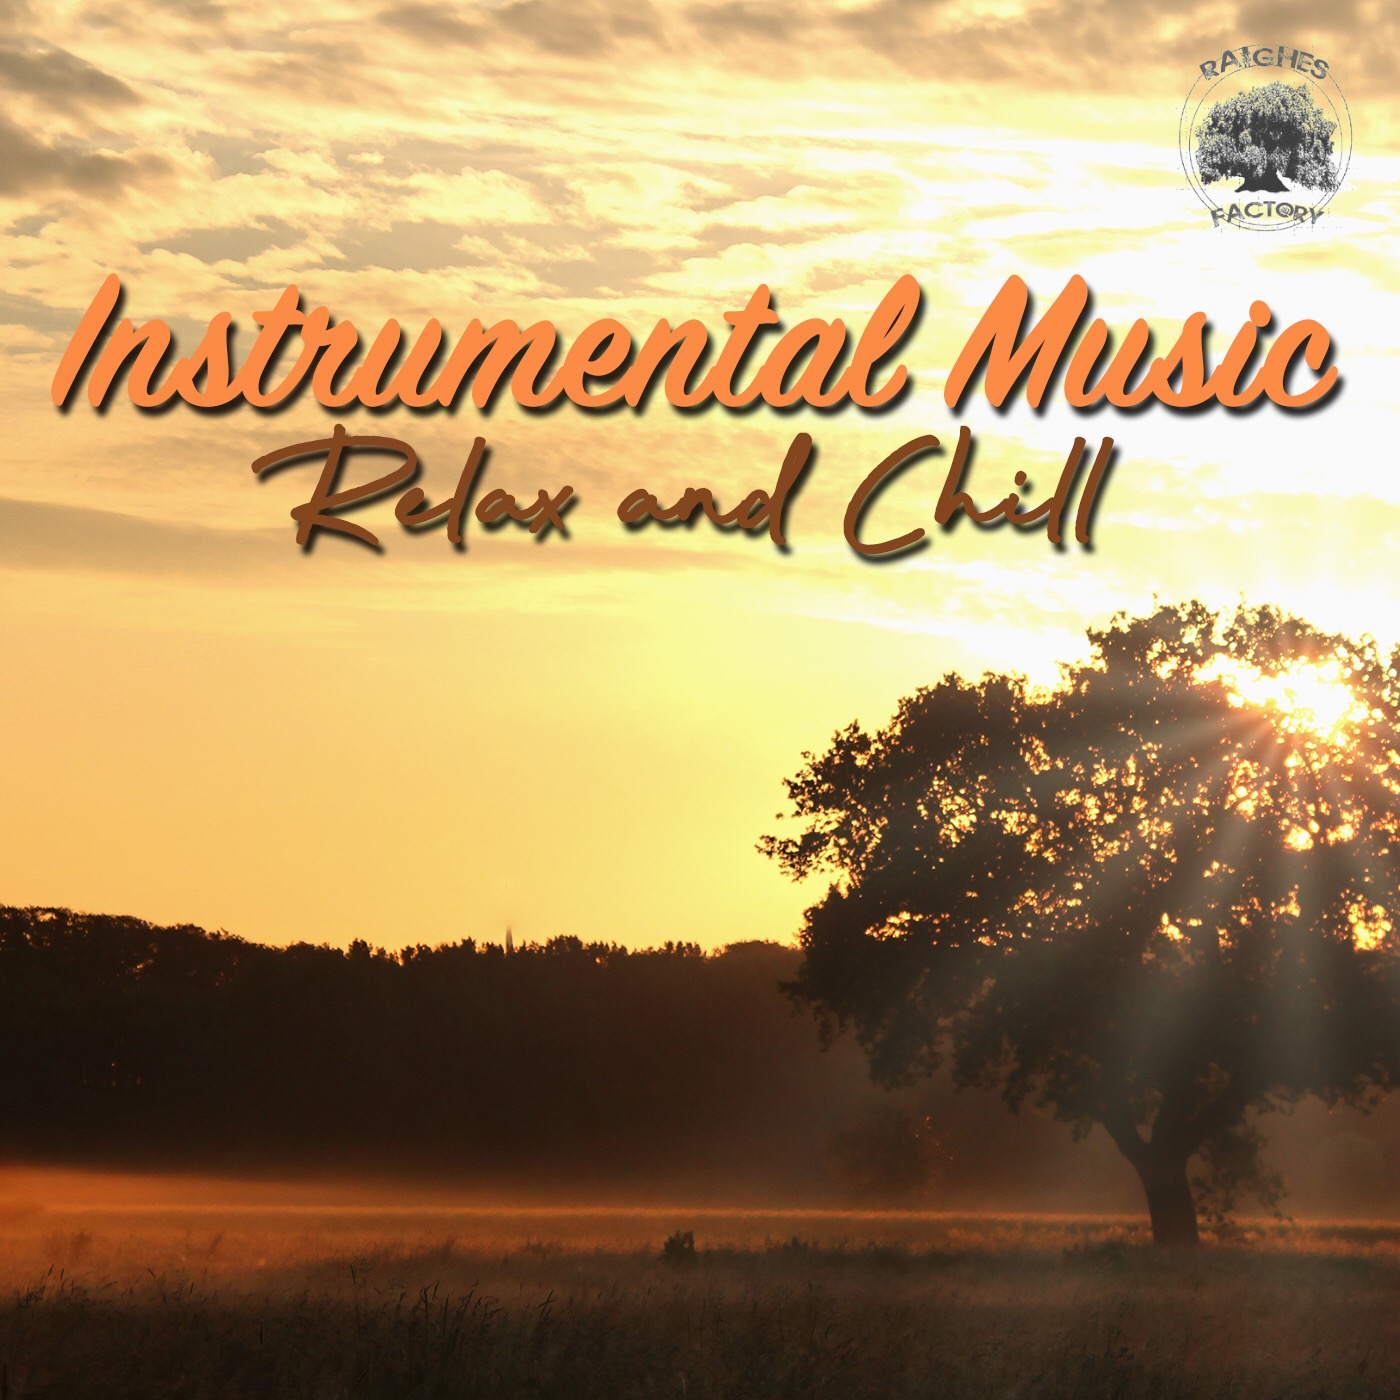 Instrumental Music Relax and Chill Rebranded Raighes Factory playlist Editorial